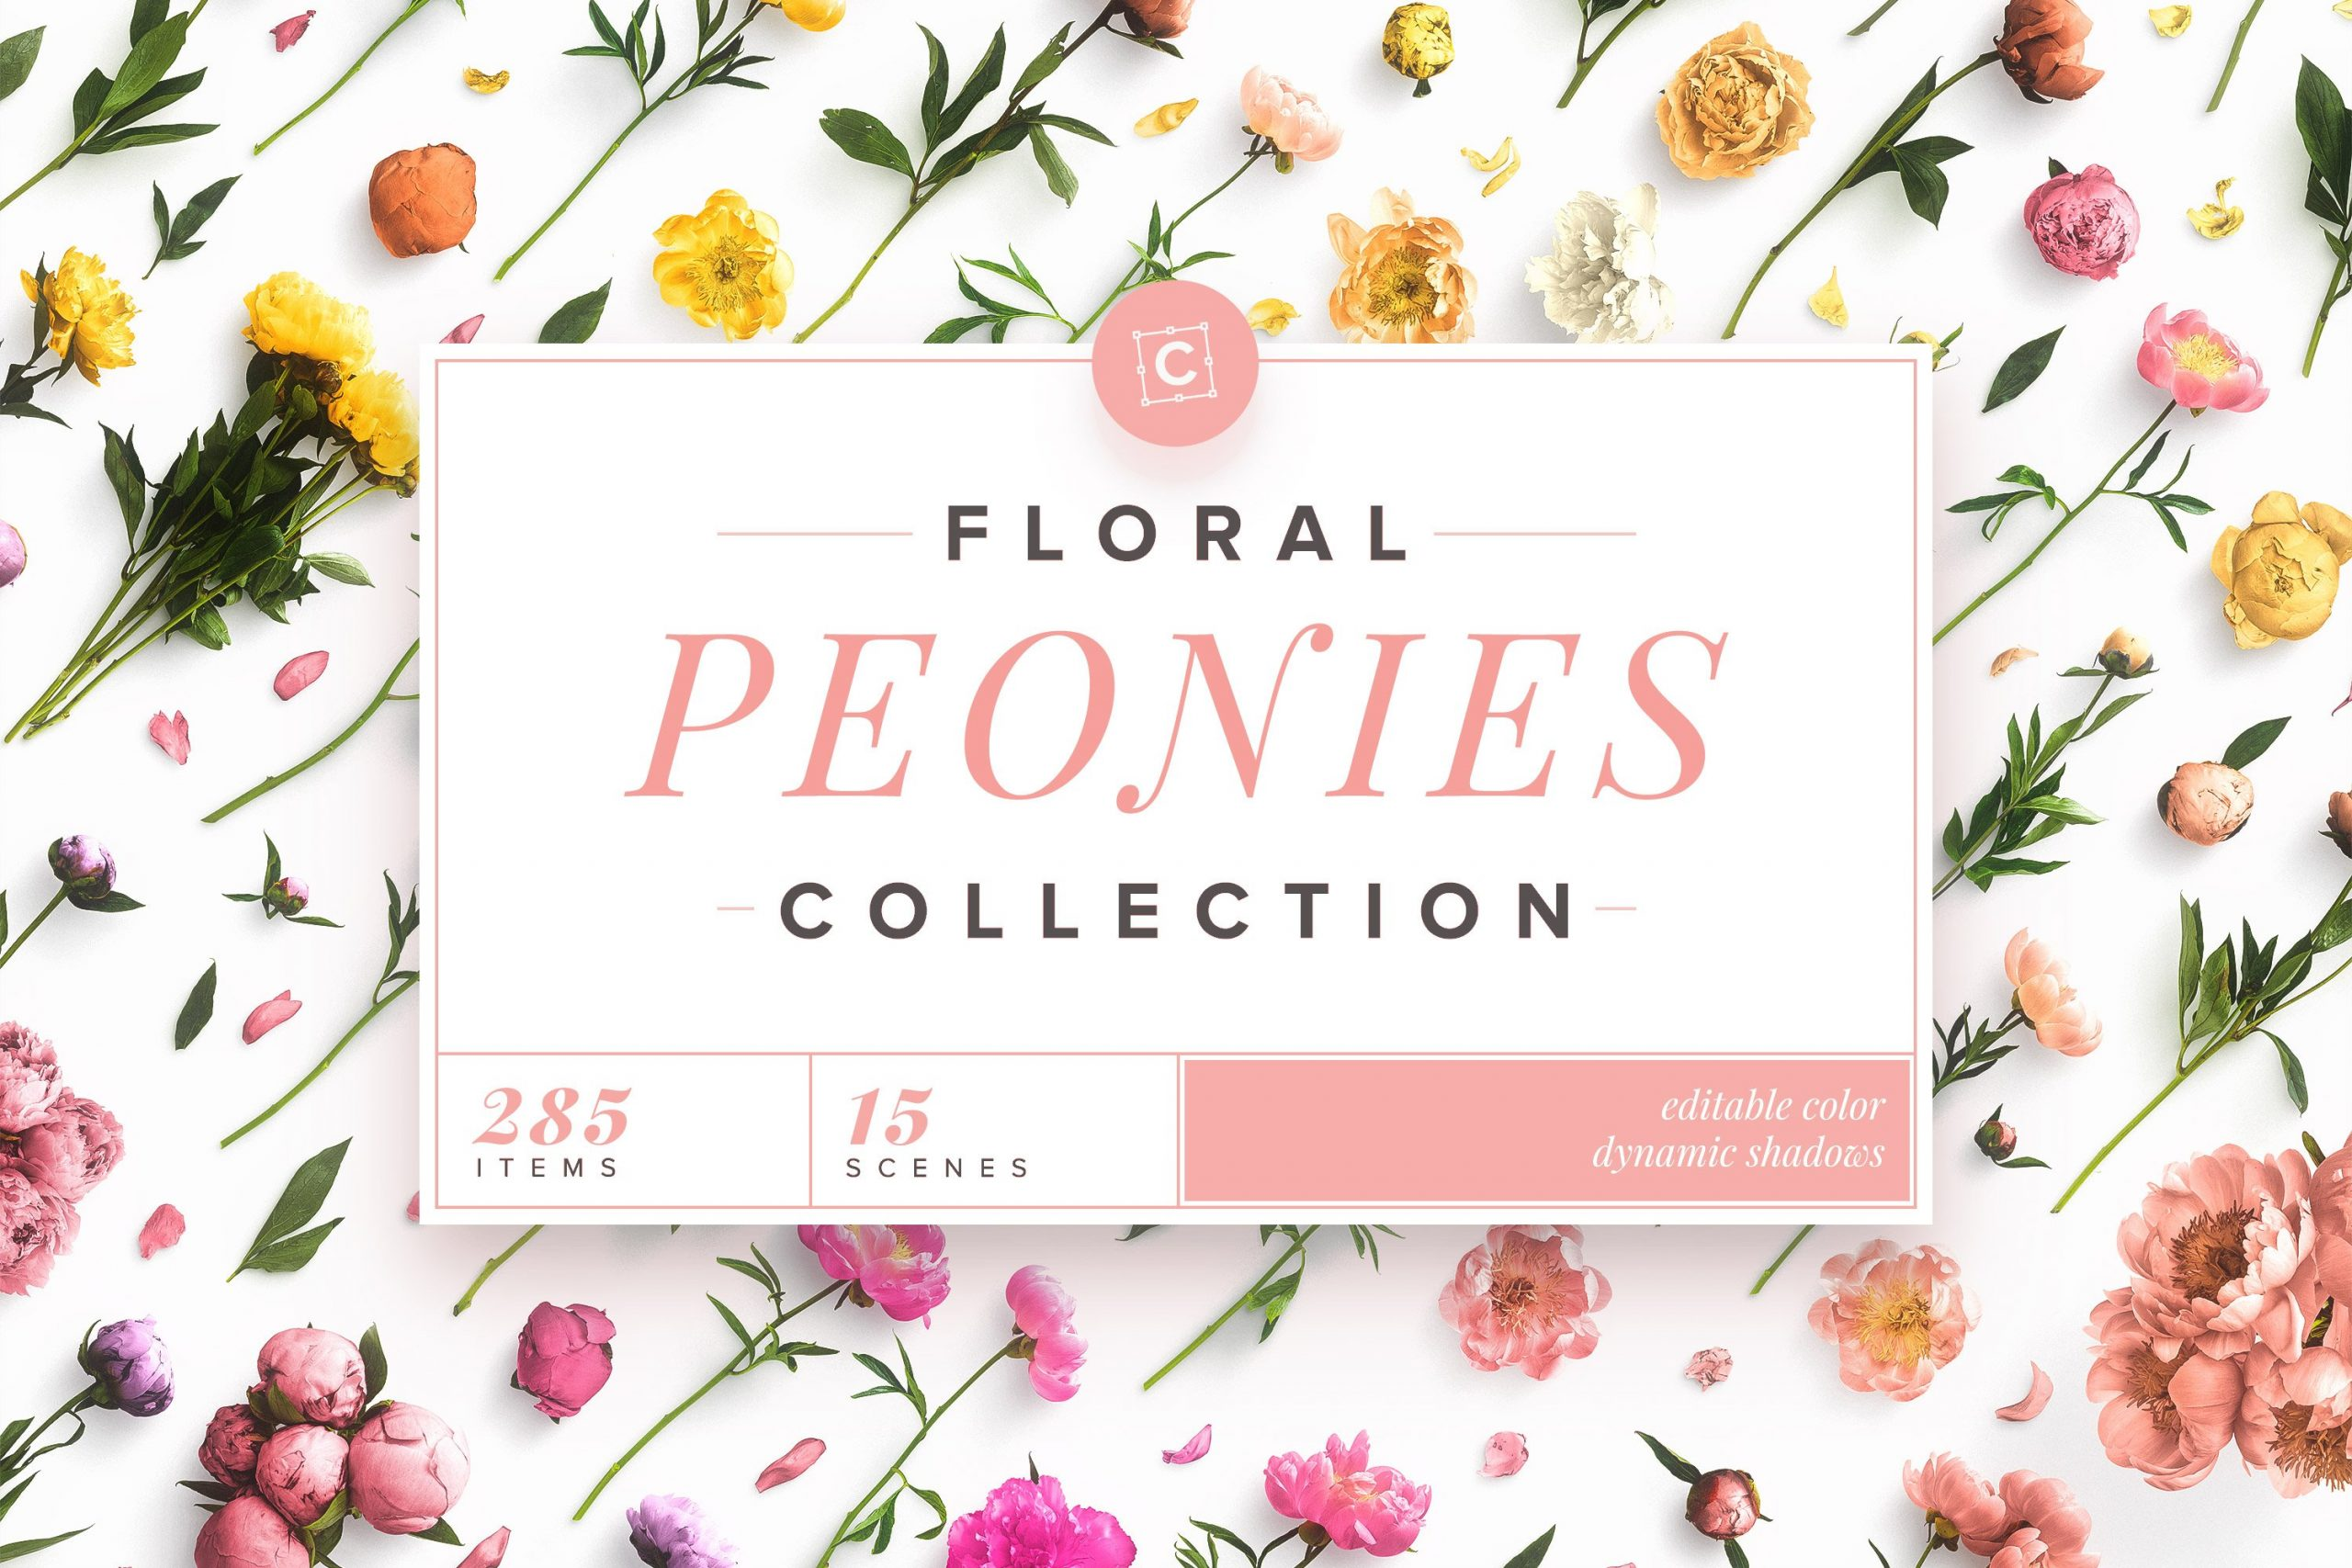 cover 3x2 floral collection peonies customscene